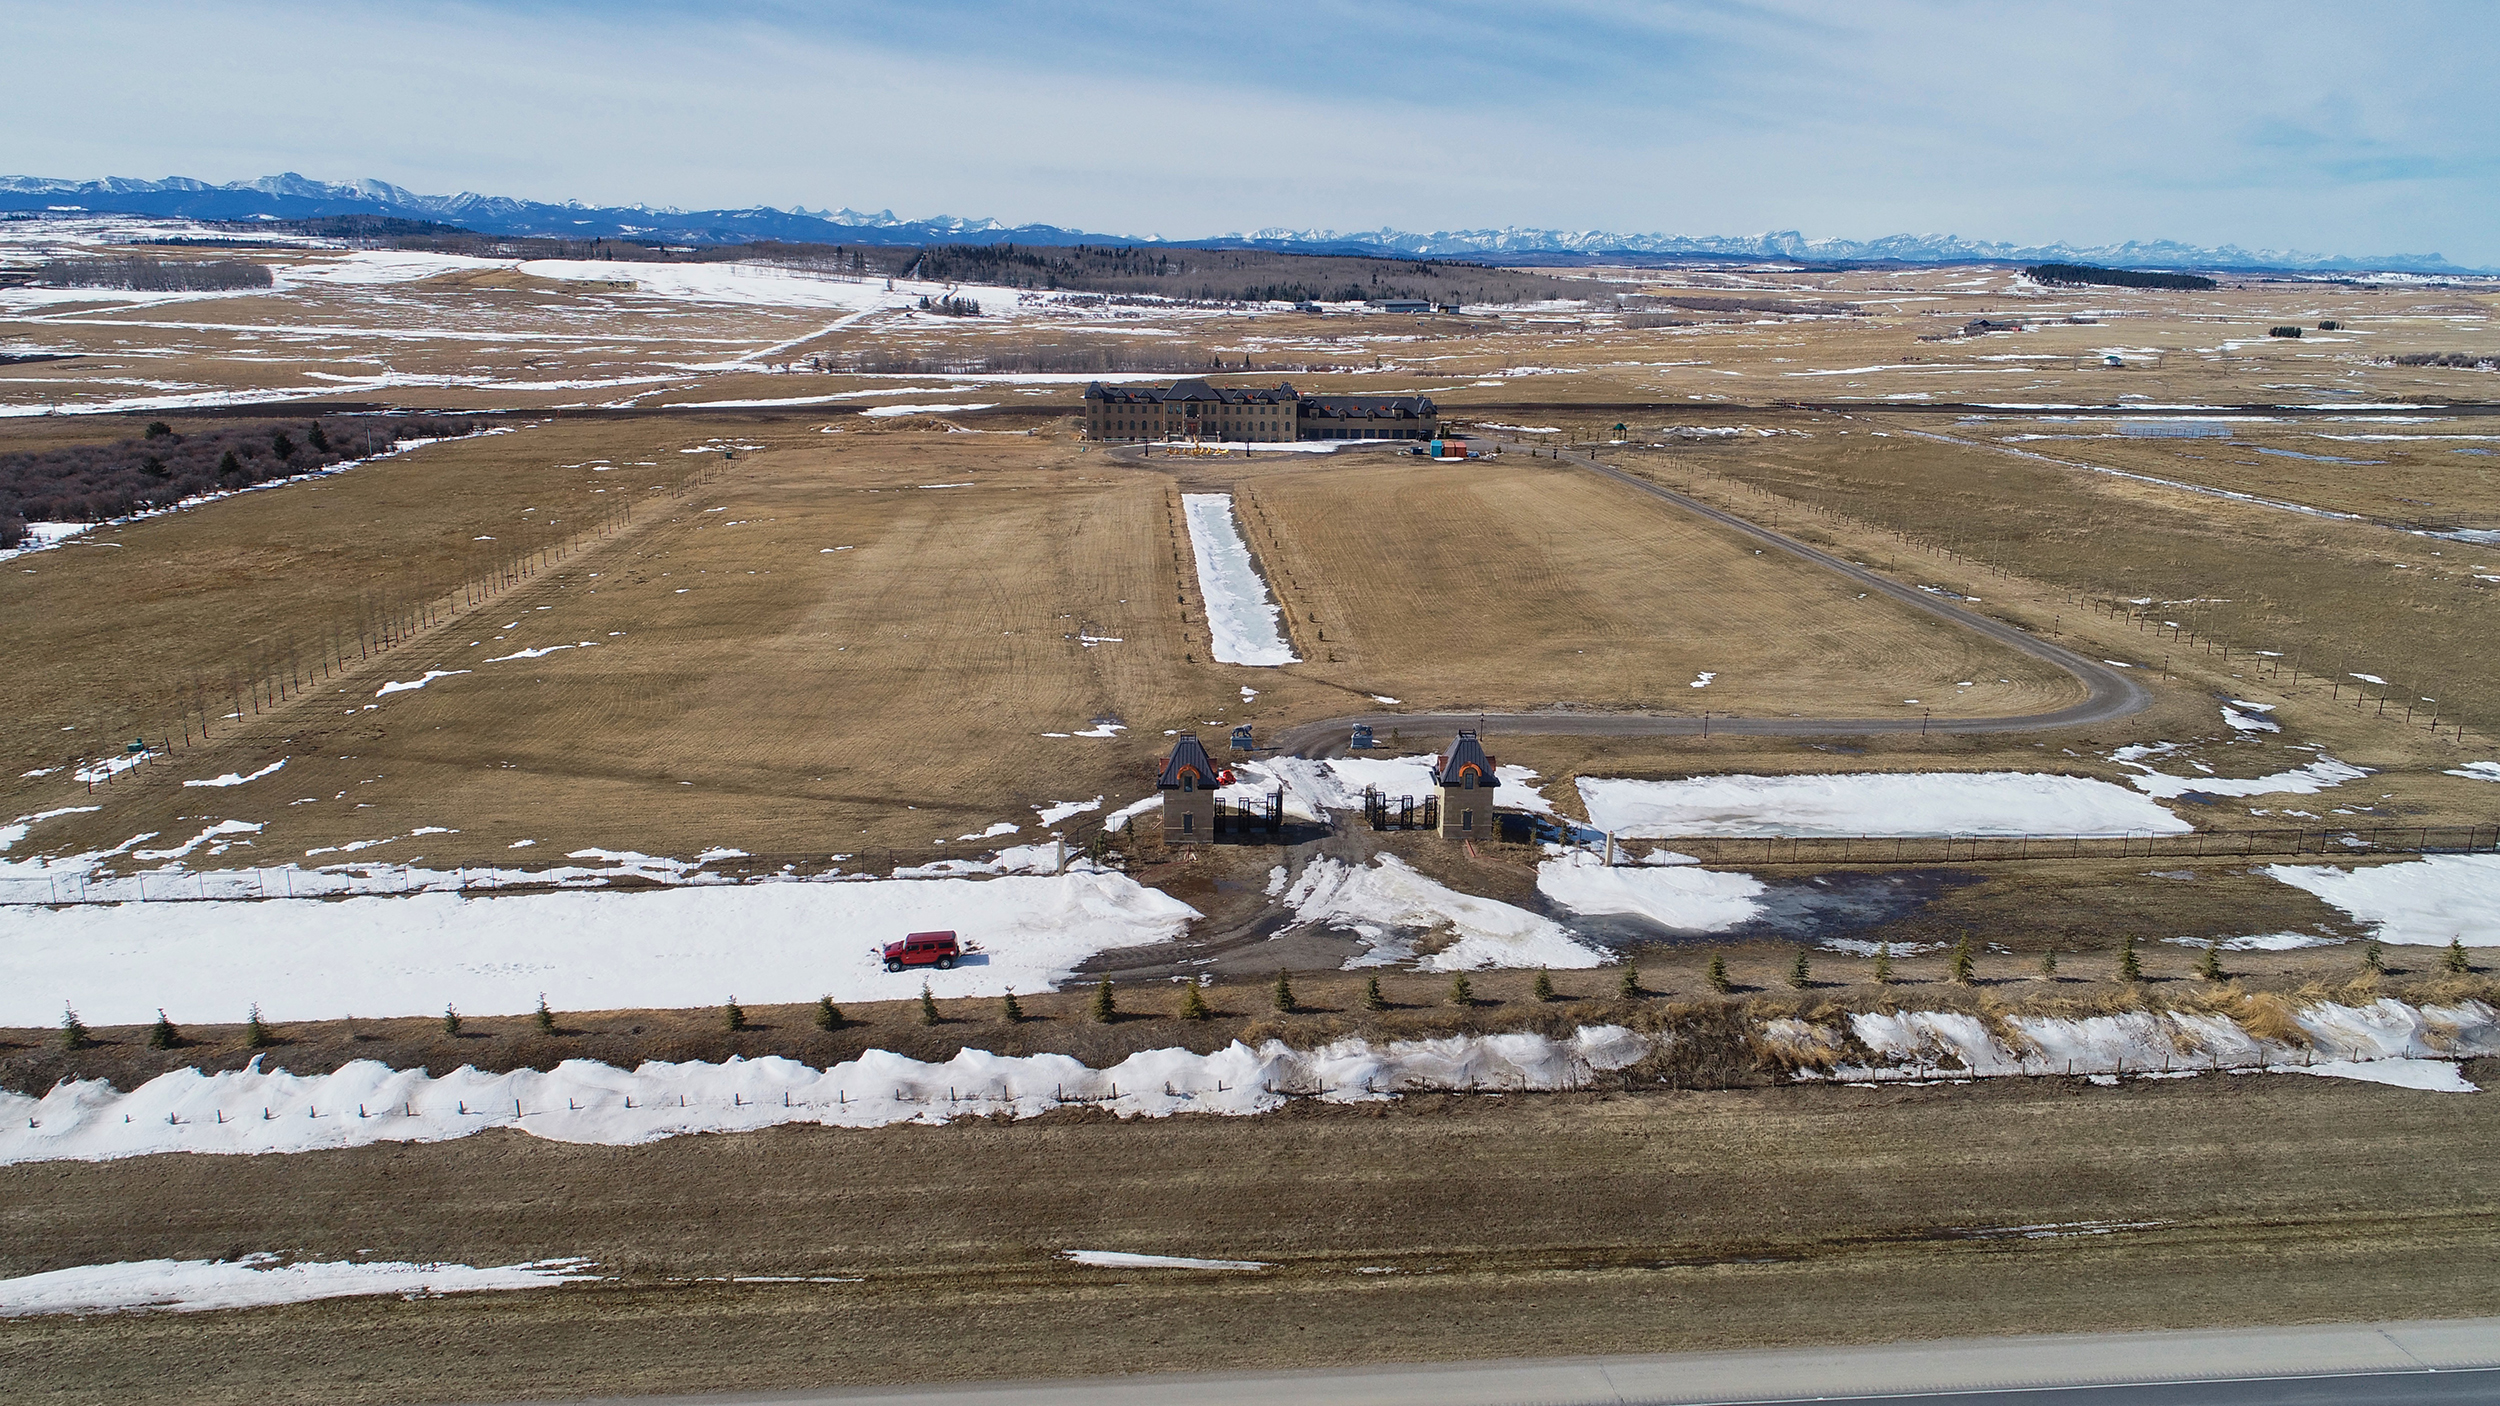 The 11,000-sq.-foot house sits next to Hwy. 22 outside Calgary (Photograph by Sam Kazerooni)